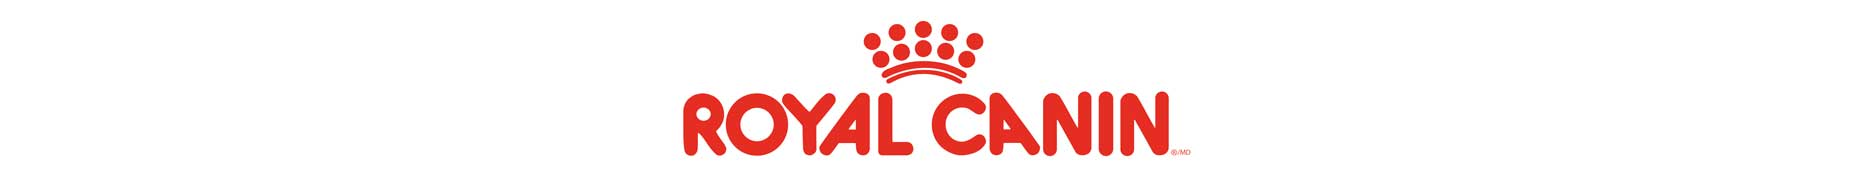 Продукция ТМ Royal Canin